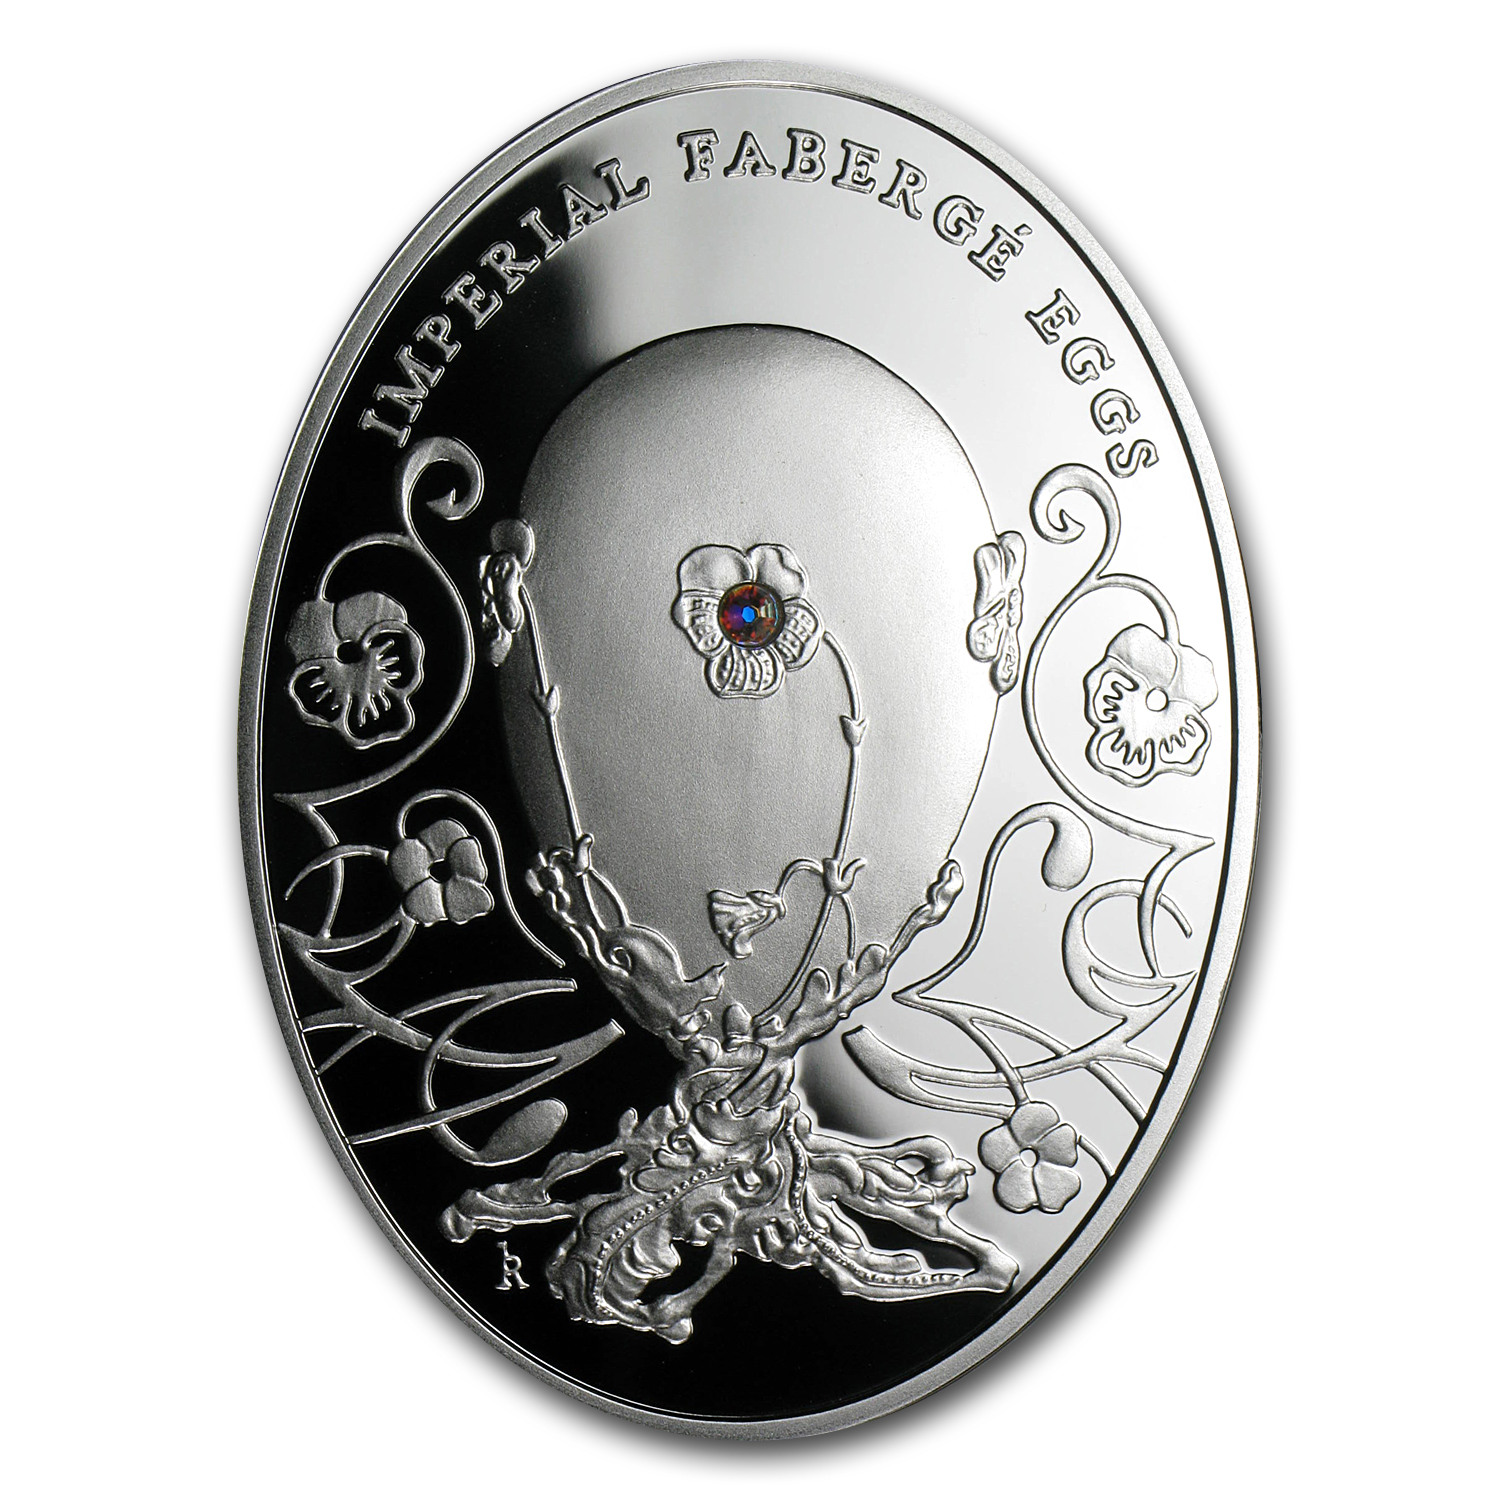 2011 Niue Proof Silver $2 Imperial Faberge Eggs Pansy